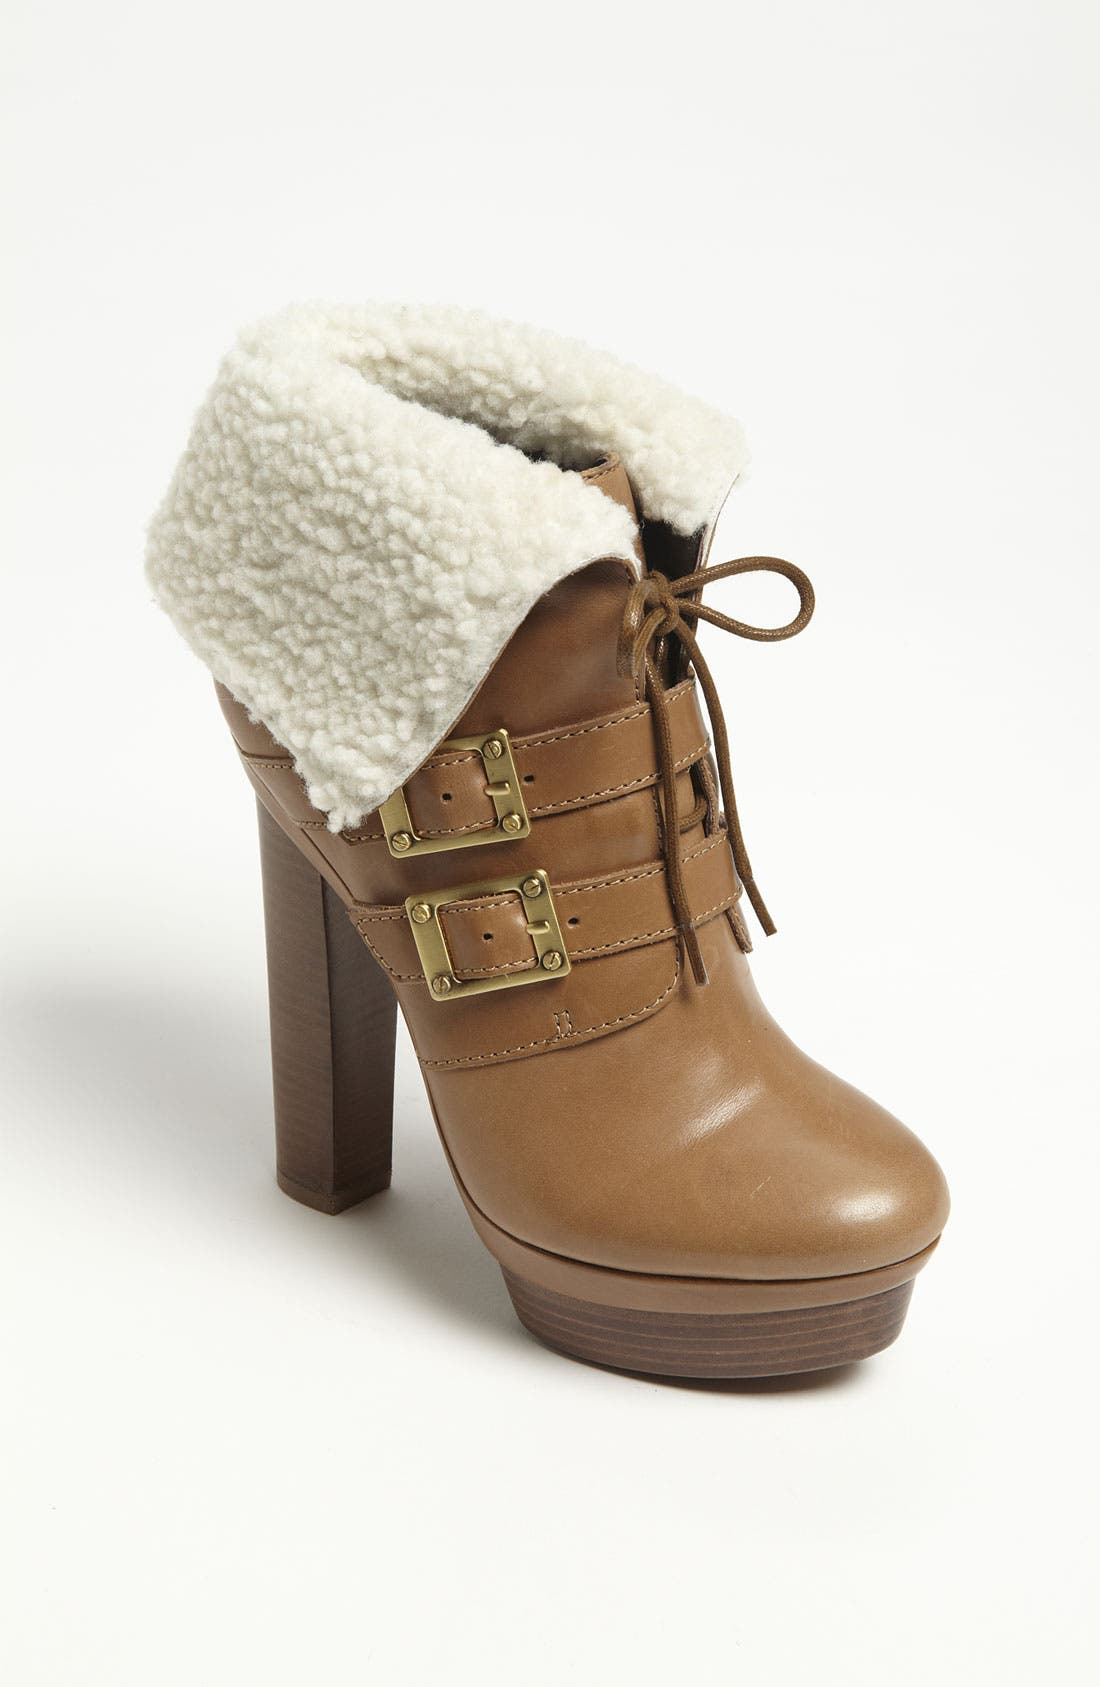 Alternate Image 1 Selected - Rachel Zoe 'Piper' Boot